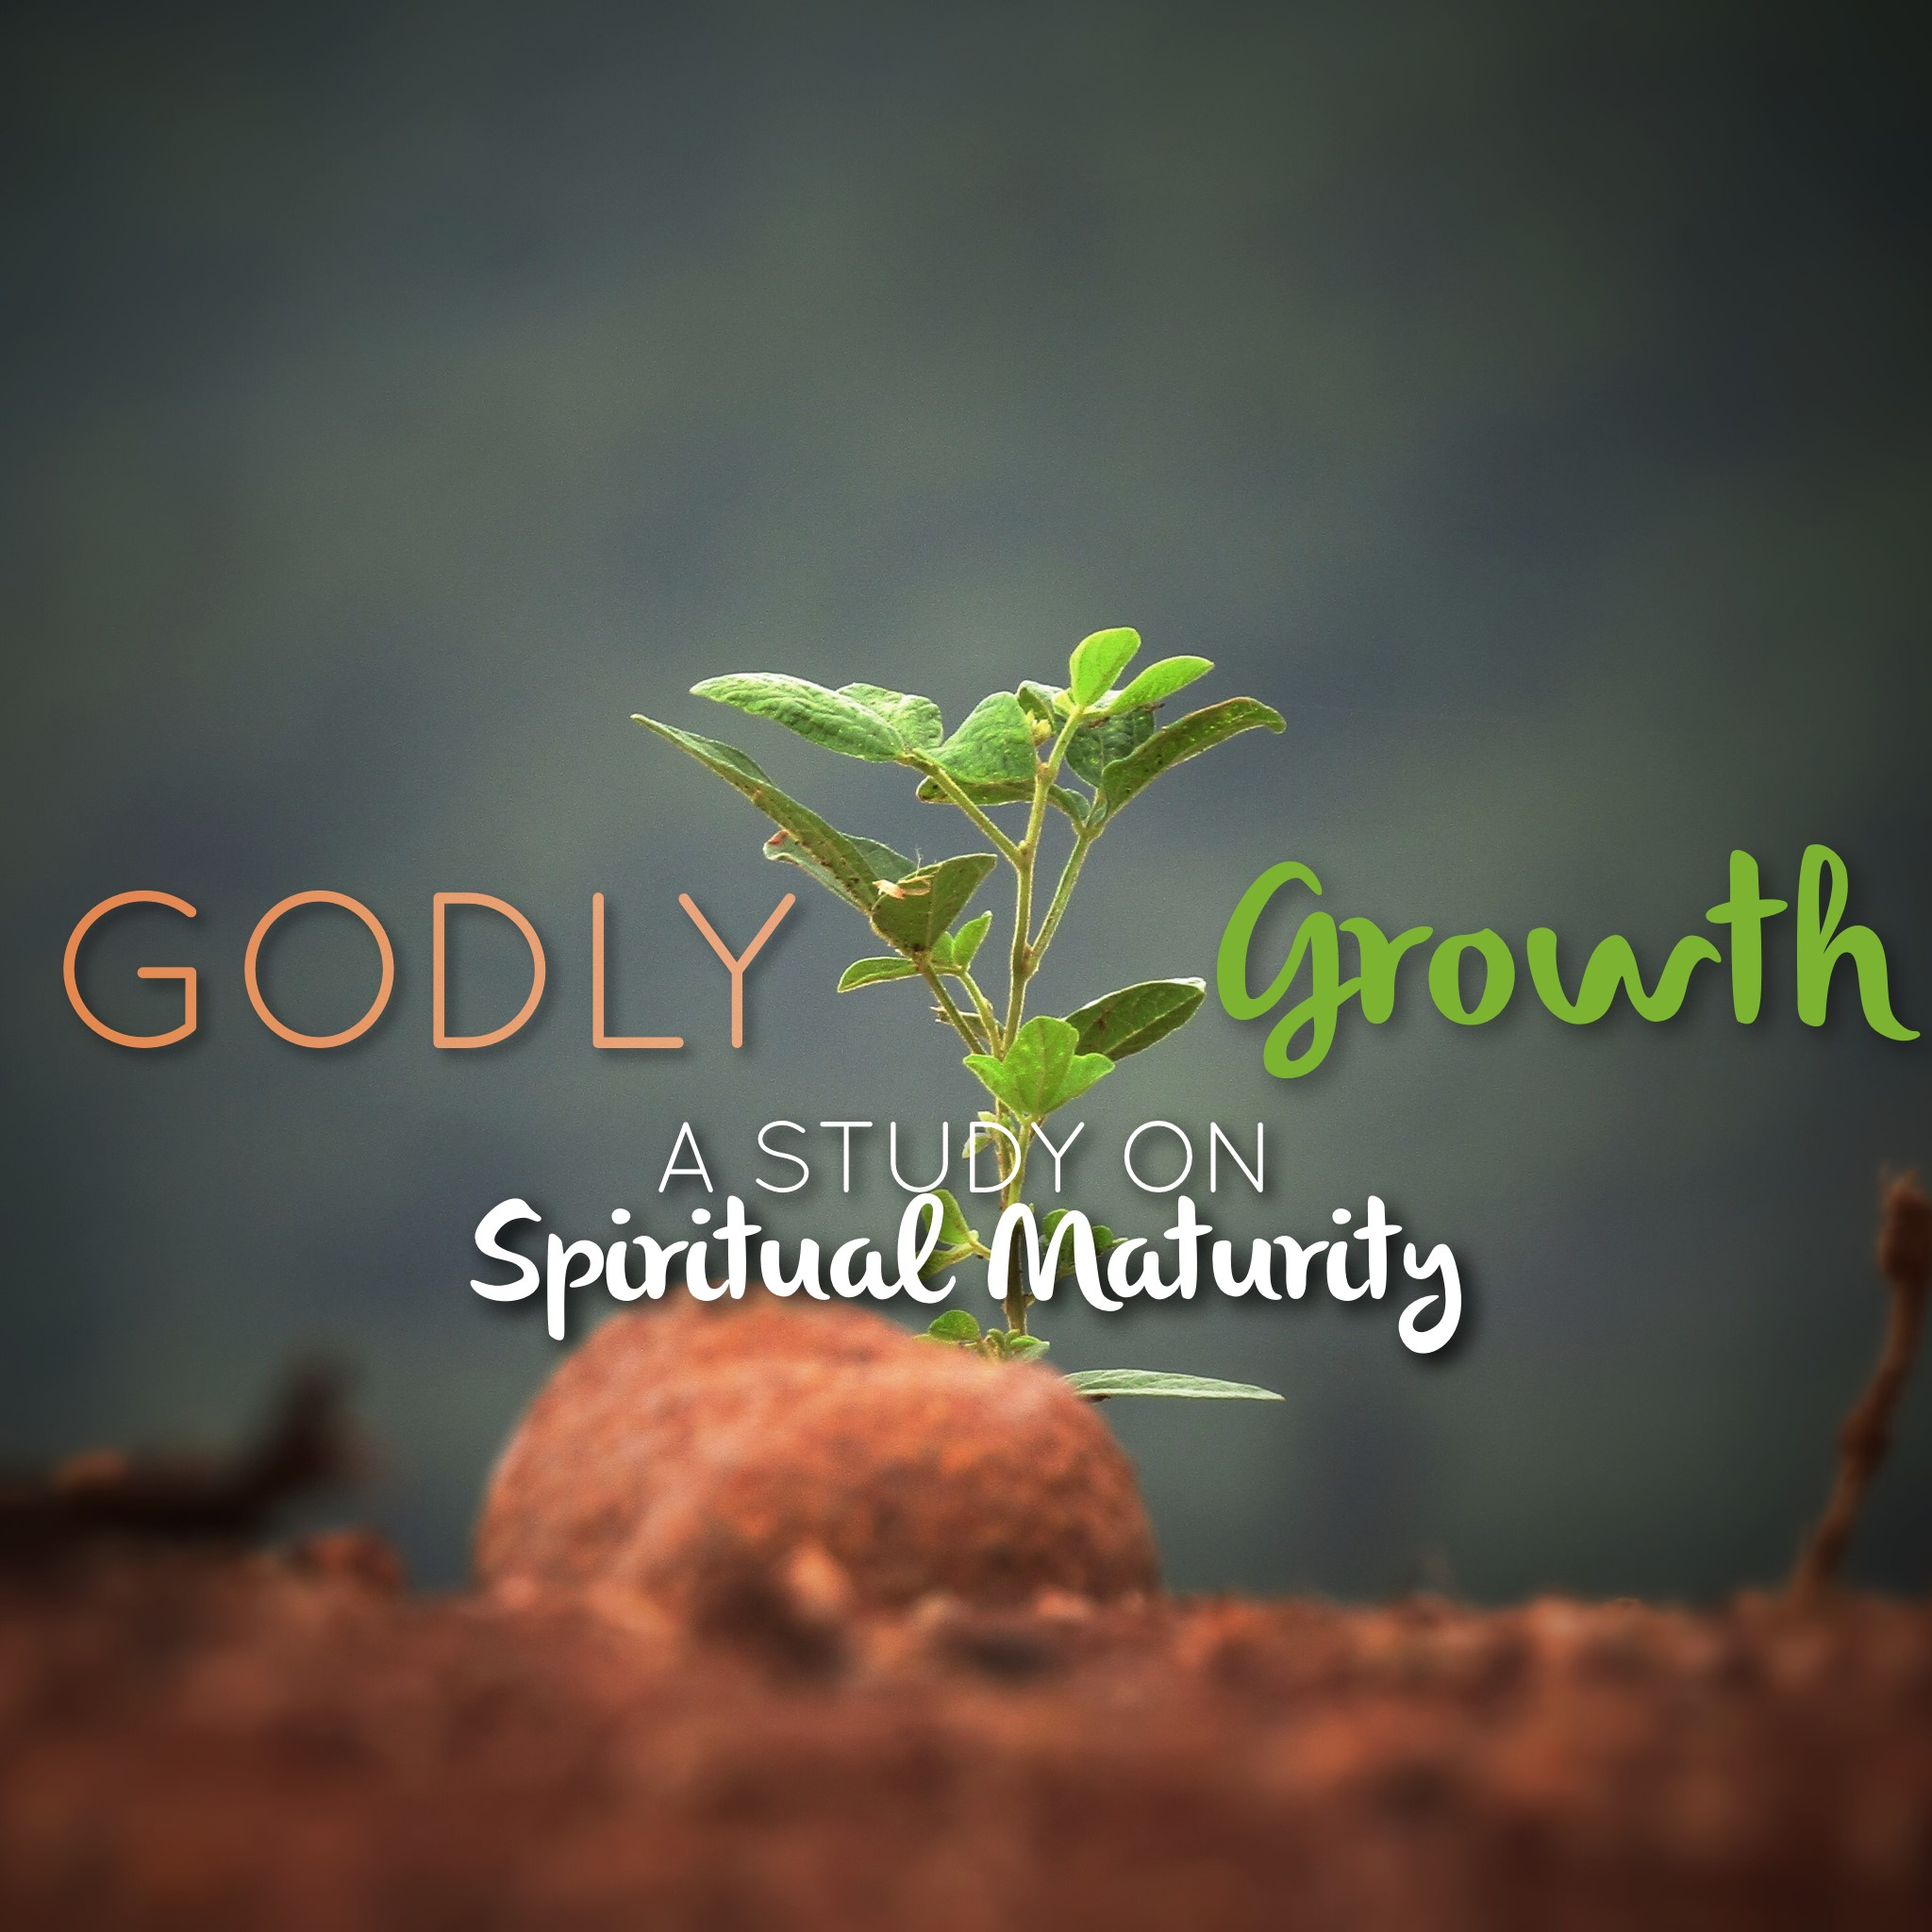 Godly Growth